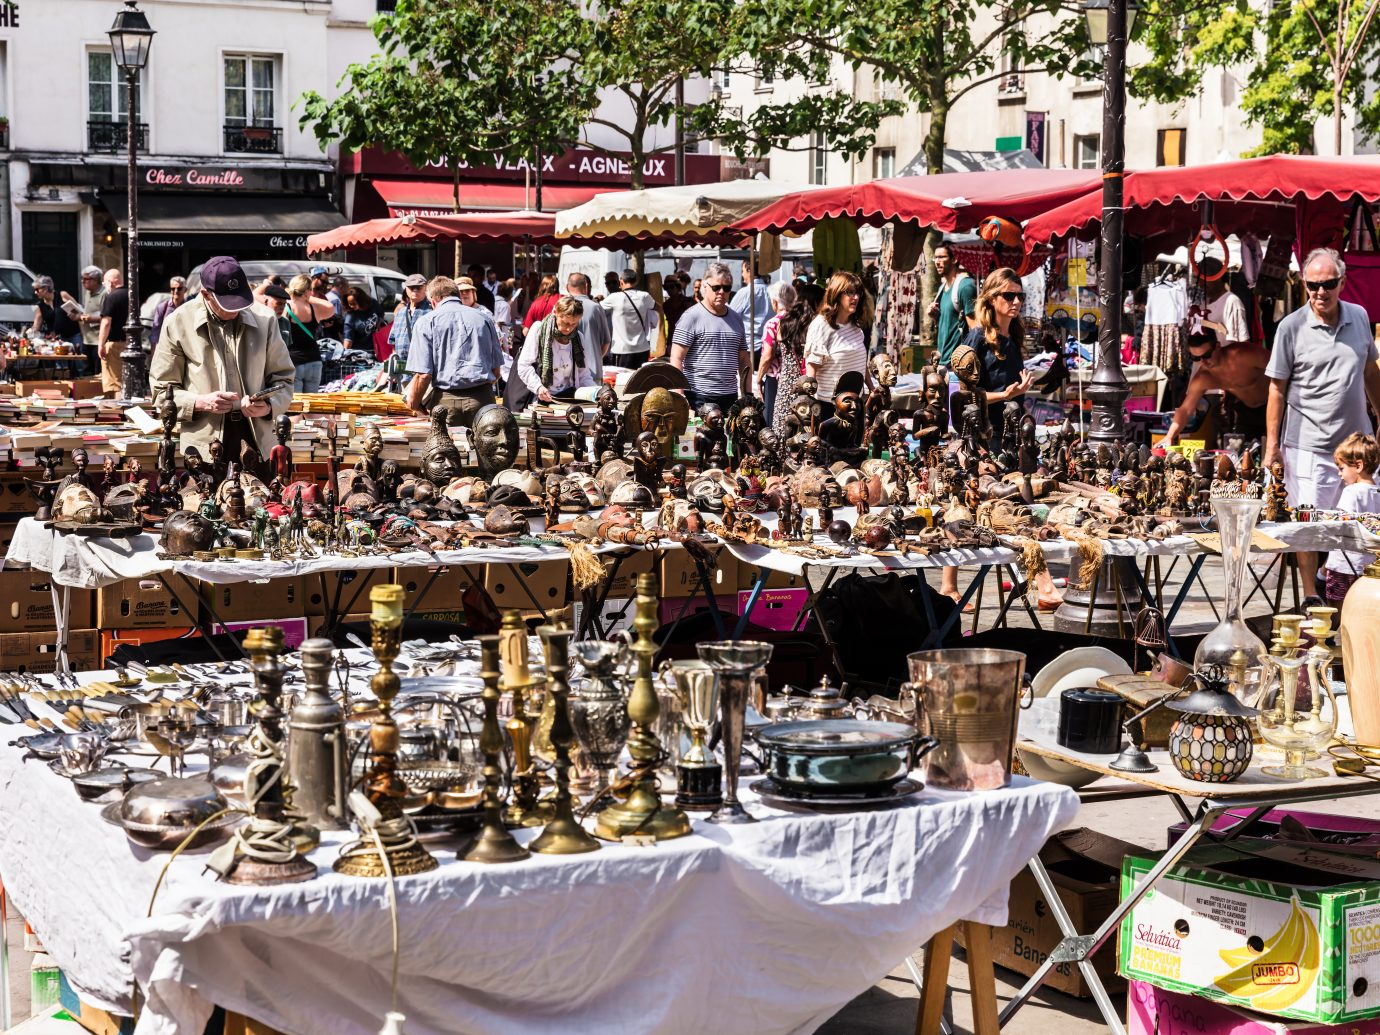 People choosing rare and used books, wooden masks and figures of African culture at the historic flea Aligre Market (Marche d'Aligre) in the Bastille district.